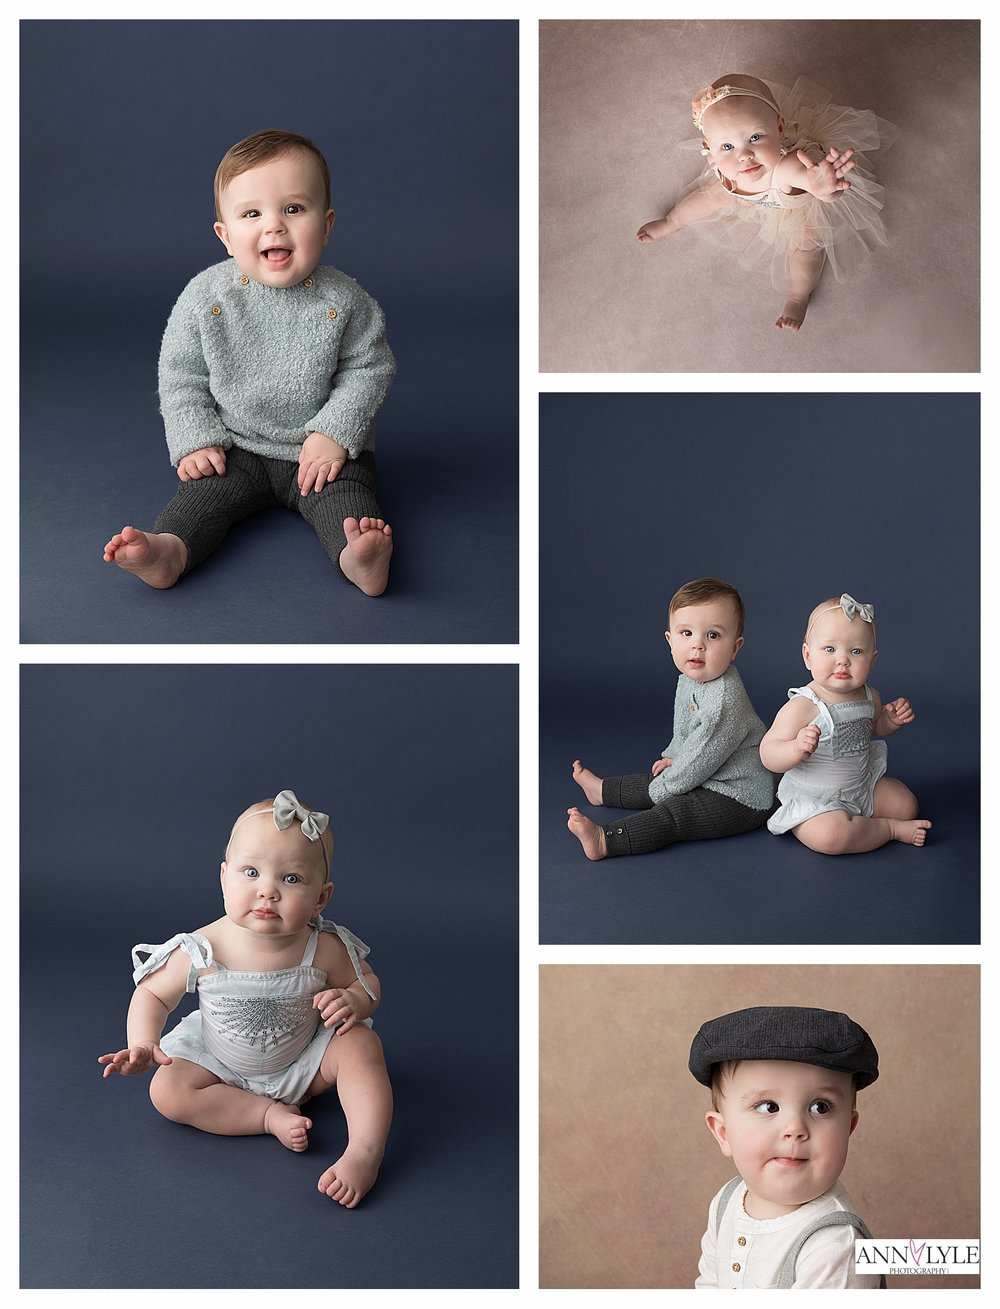 These cuties are on my baby photographer plan. I did their newborn session, 4 months, 8 months (photos above) and soon they will be back for their Cake Smash session. It's so amazing to watch these babies grown over 1 year.